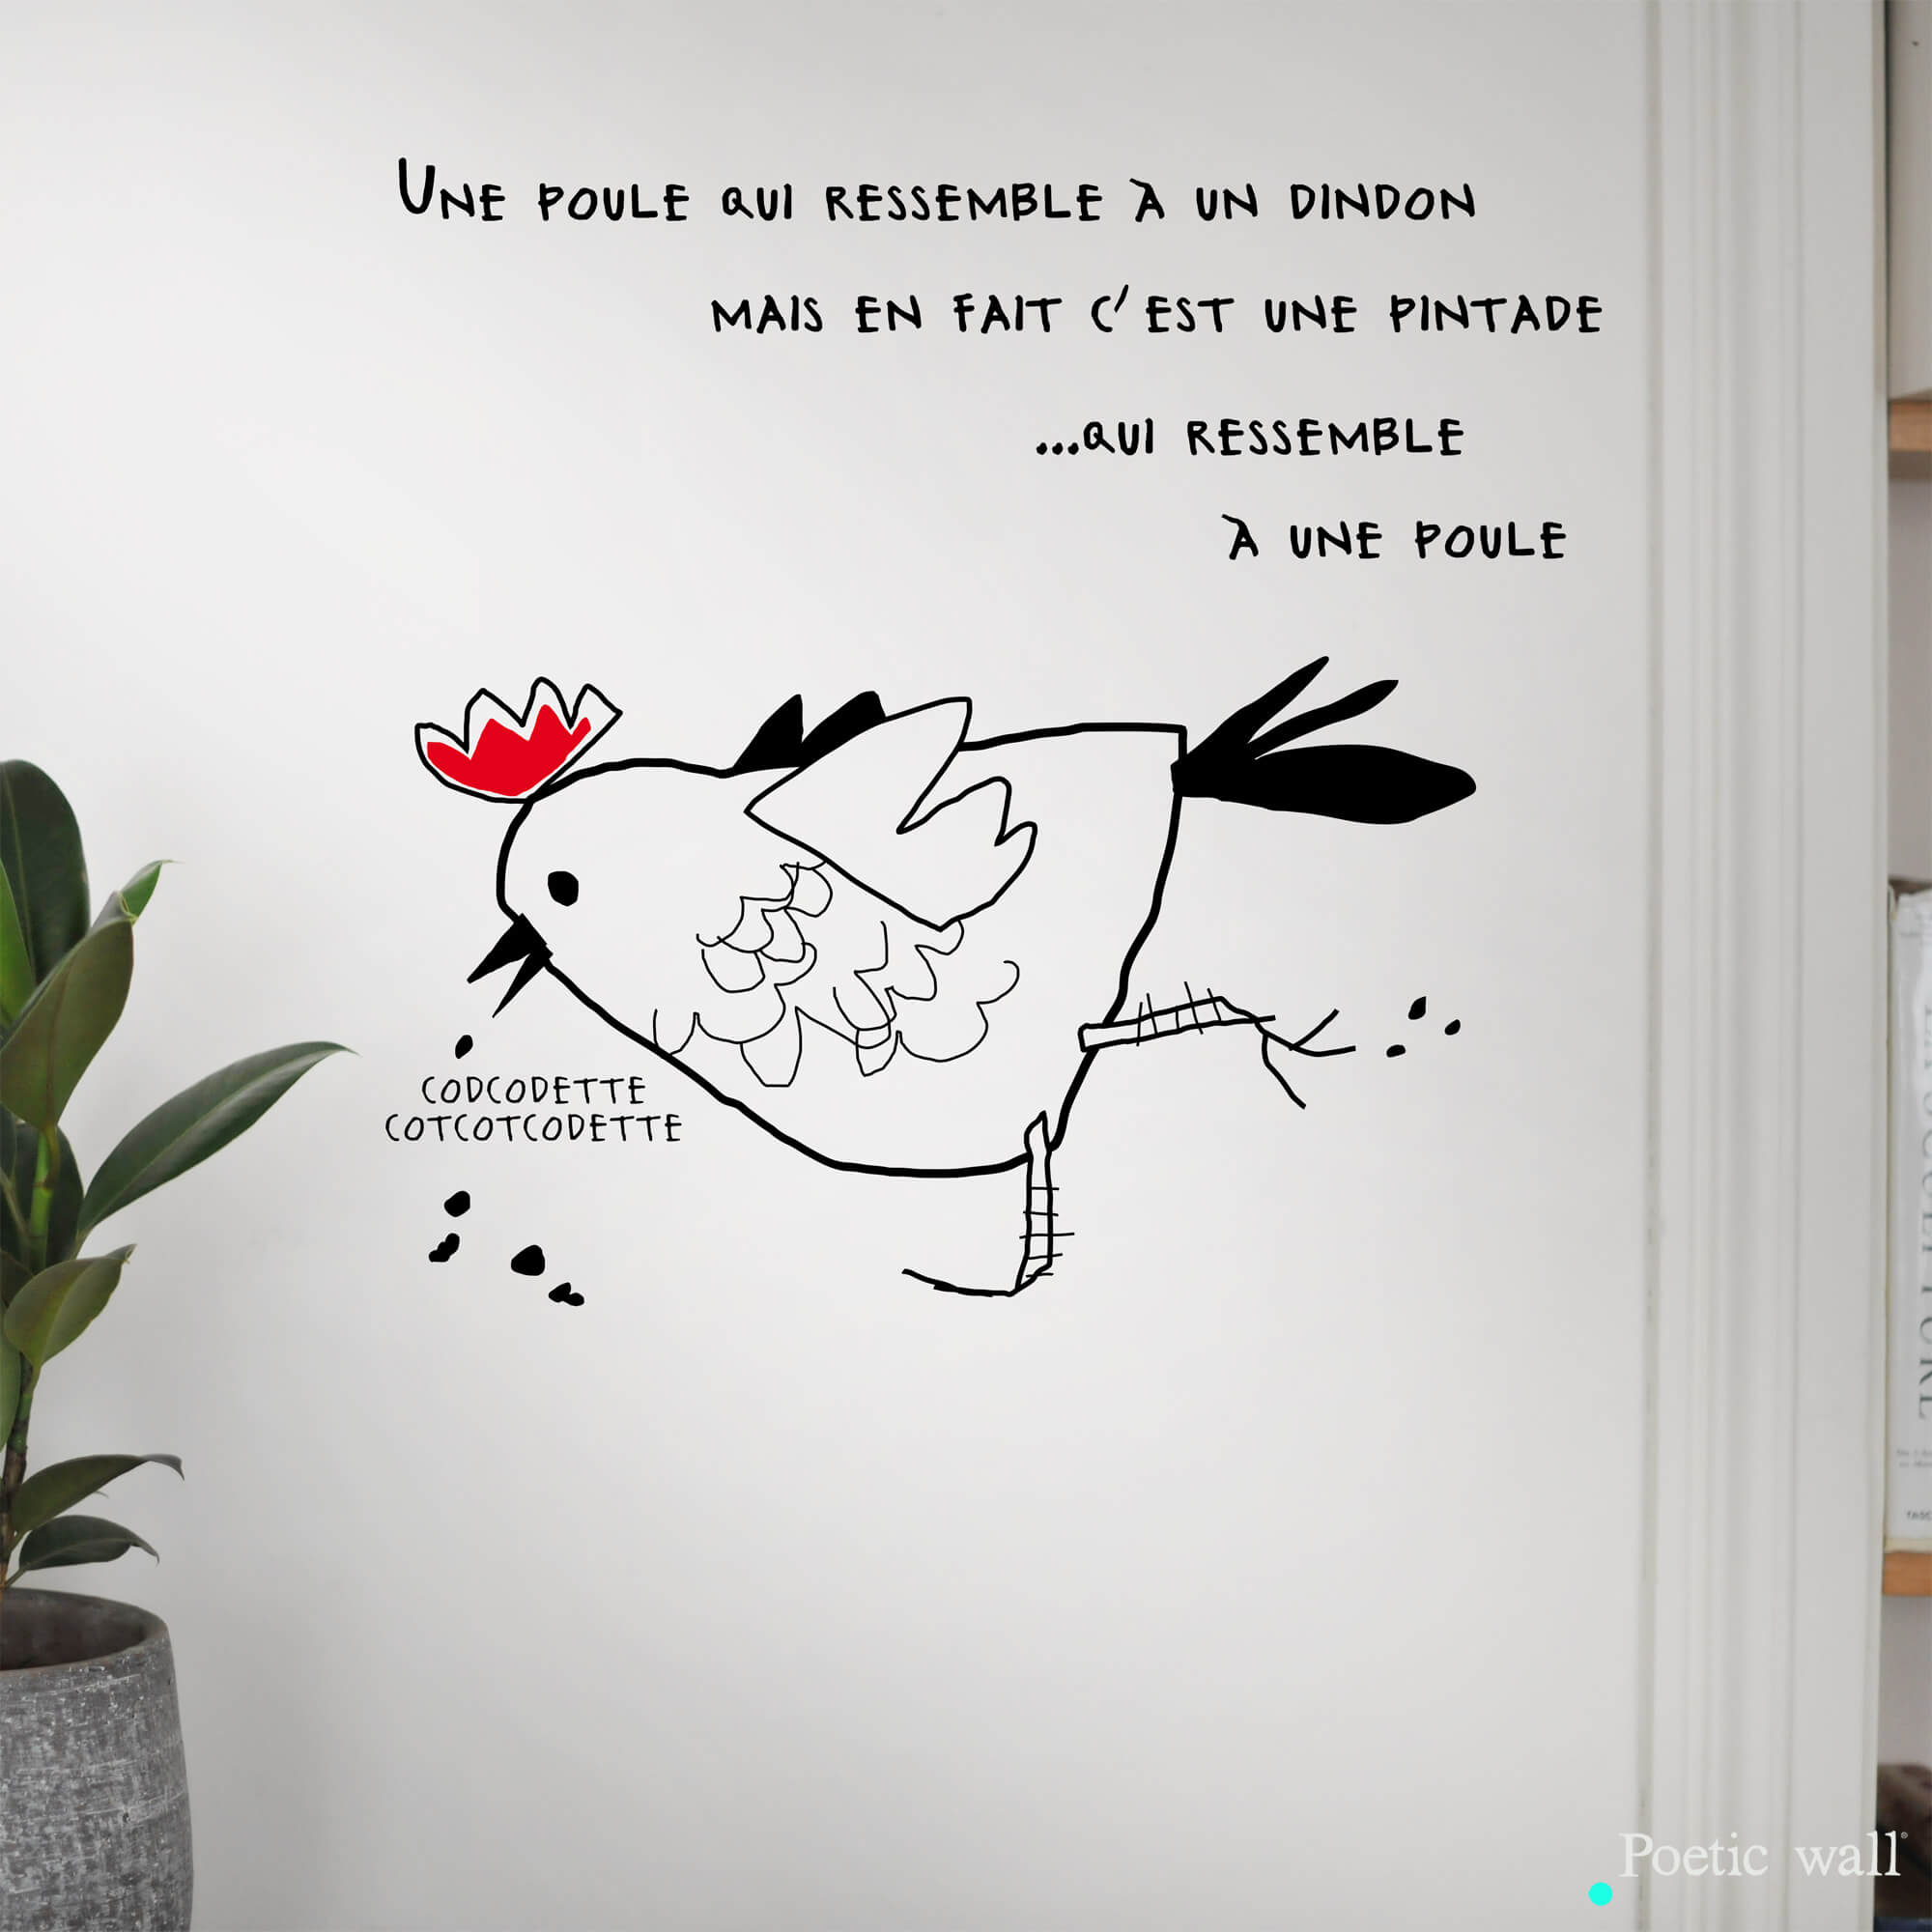 stickers-le-sosie-de-la-poule-poetic-wall